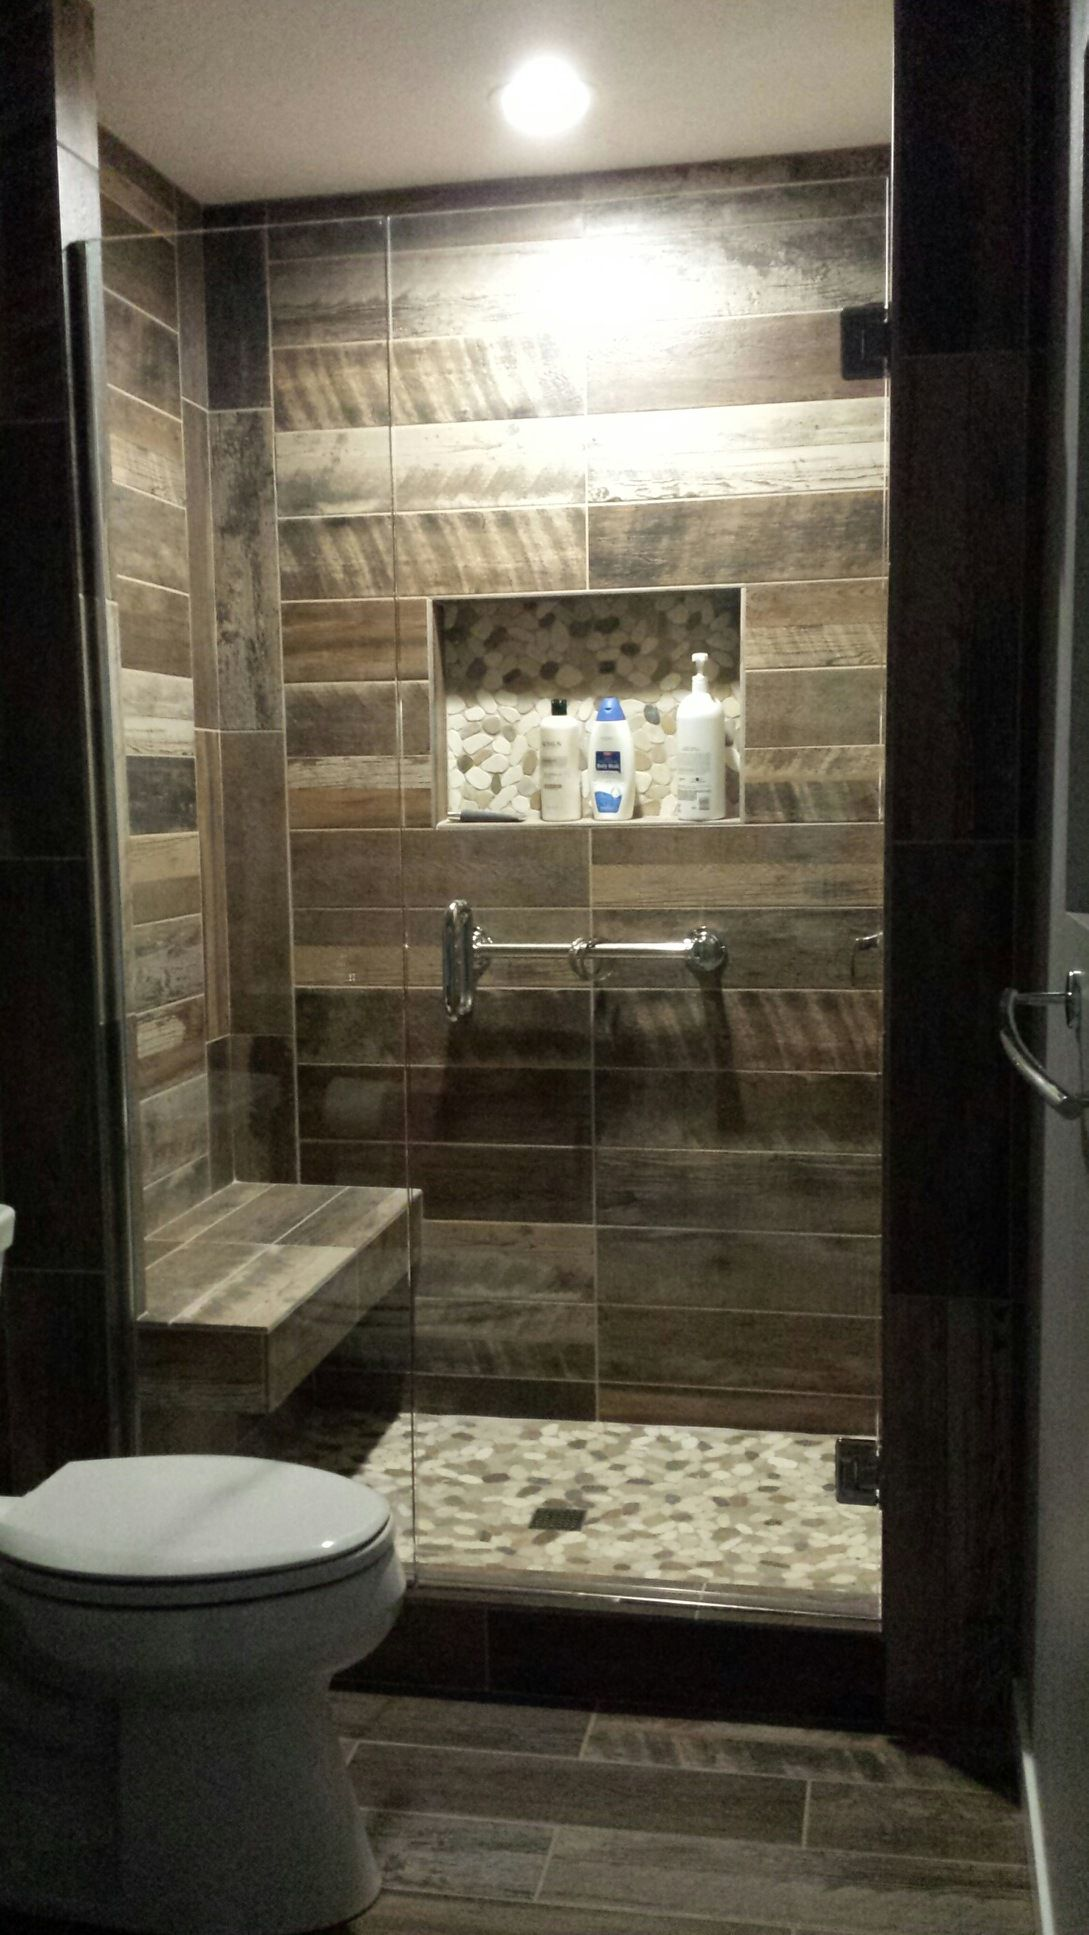 Kennewick Wa Bathroom Remodel Custom Walk In Shower With Wood Plank Look Tile Walls And Natural